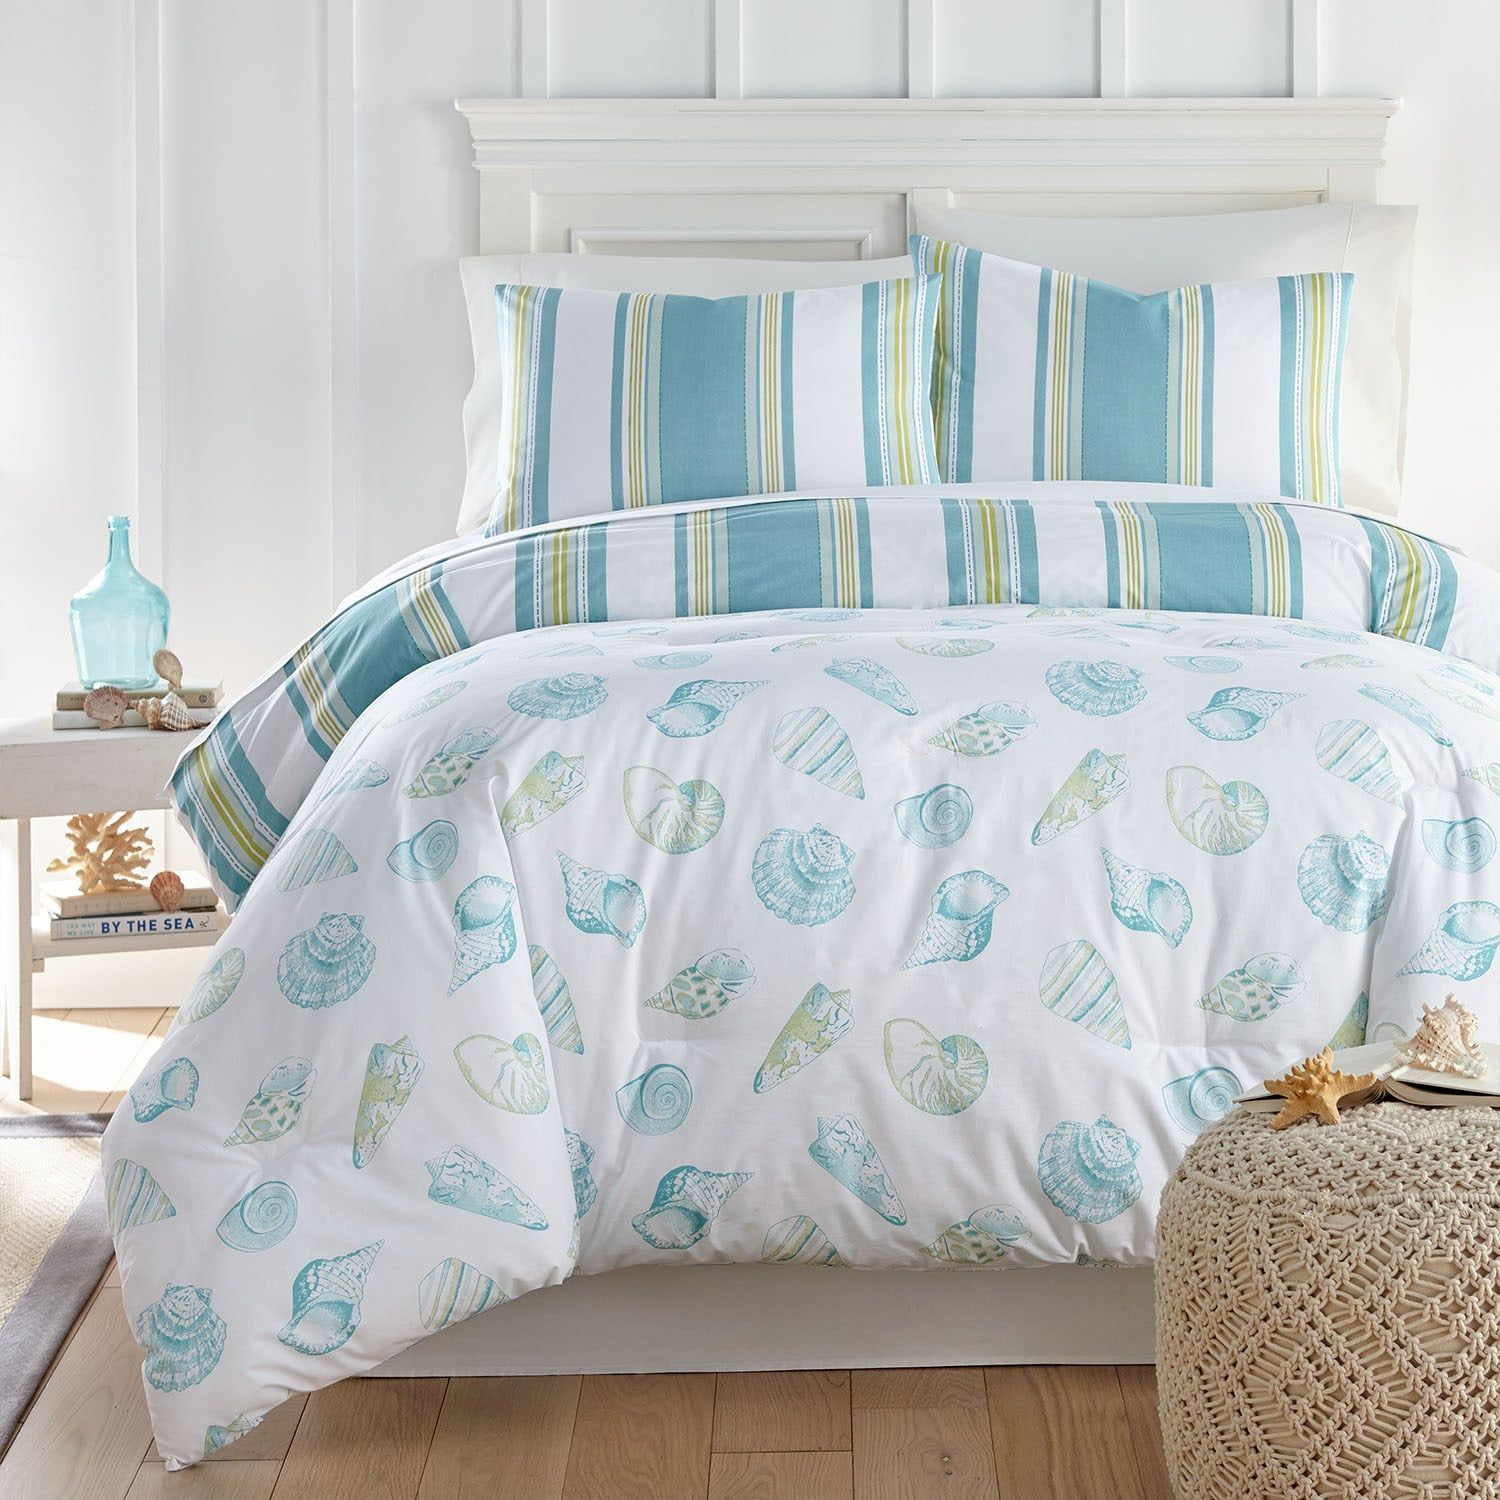 Pin On High Fashion Home Bedroom